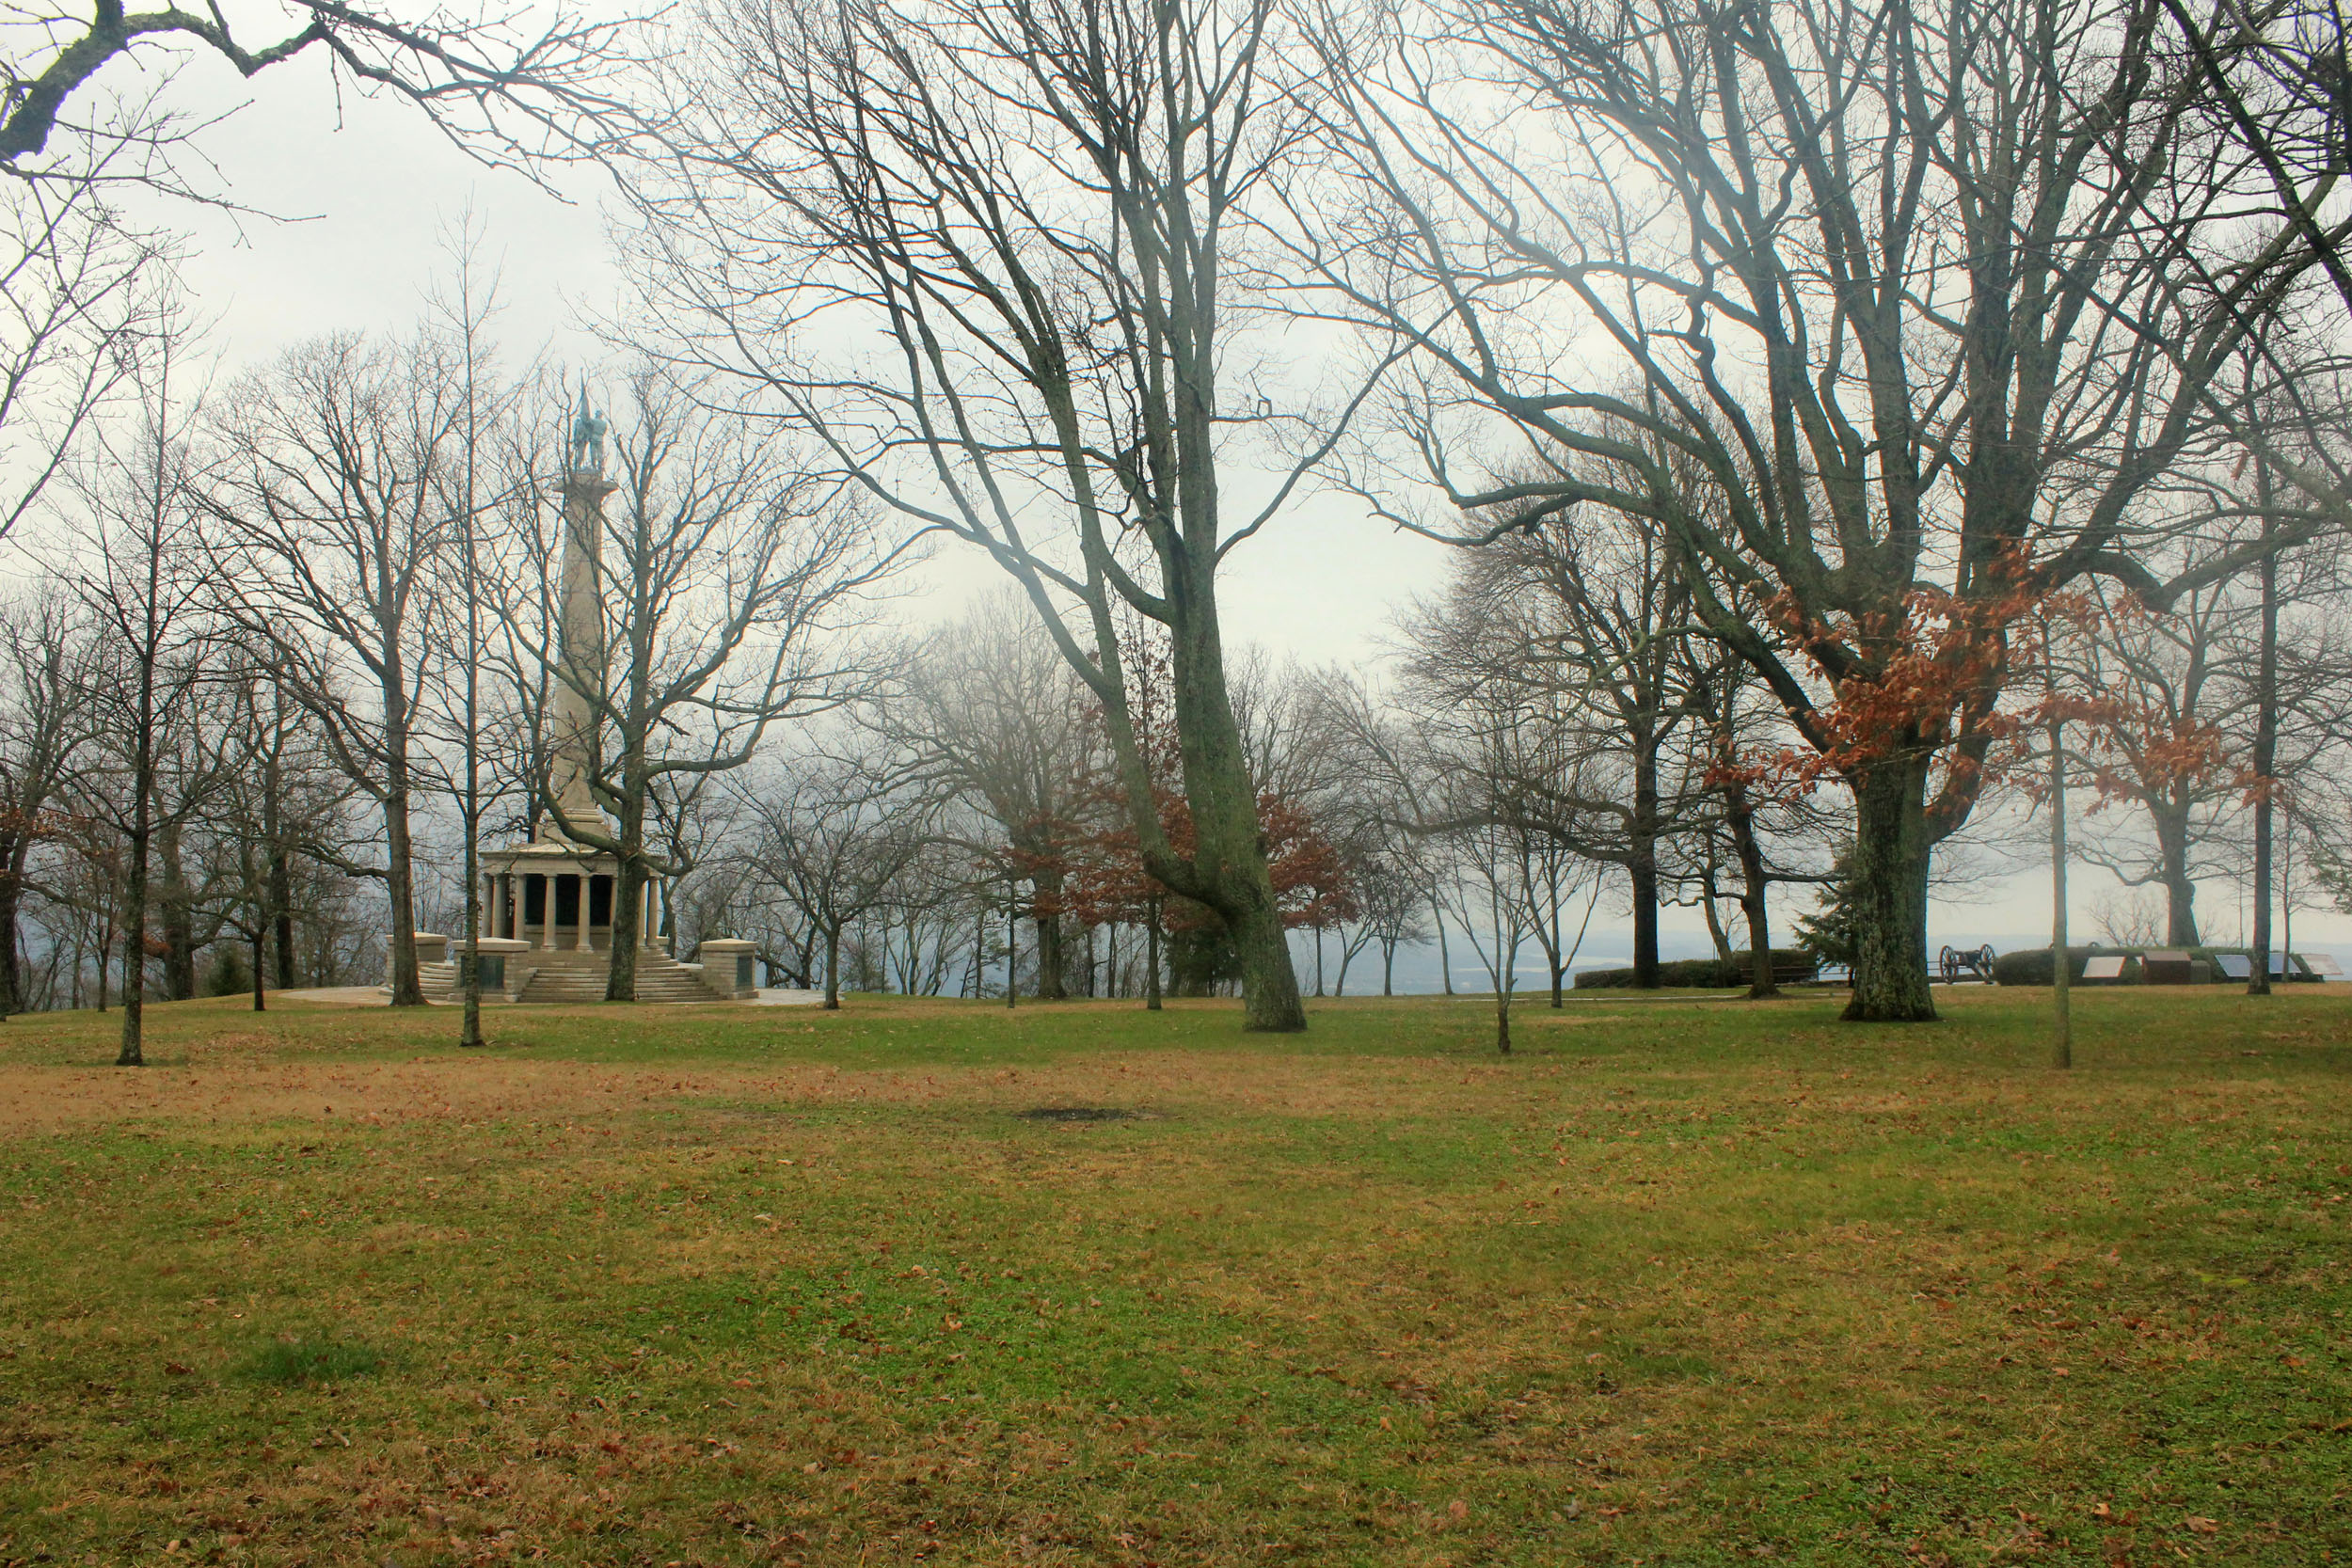 Free stock photo of the point park at lookout mountain tennessee a picture of the landscape of the point park in tennessee sciox Gallery